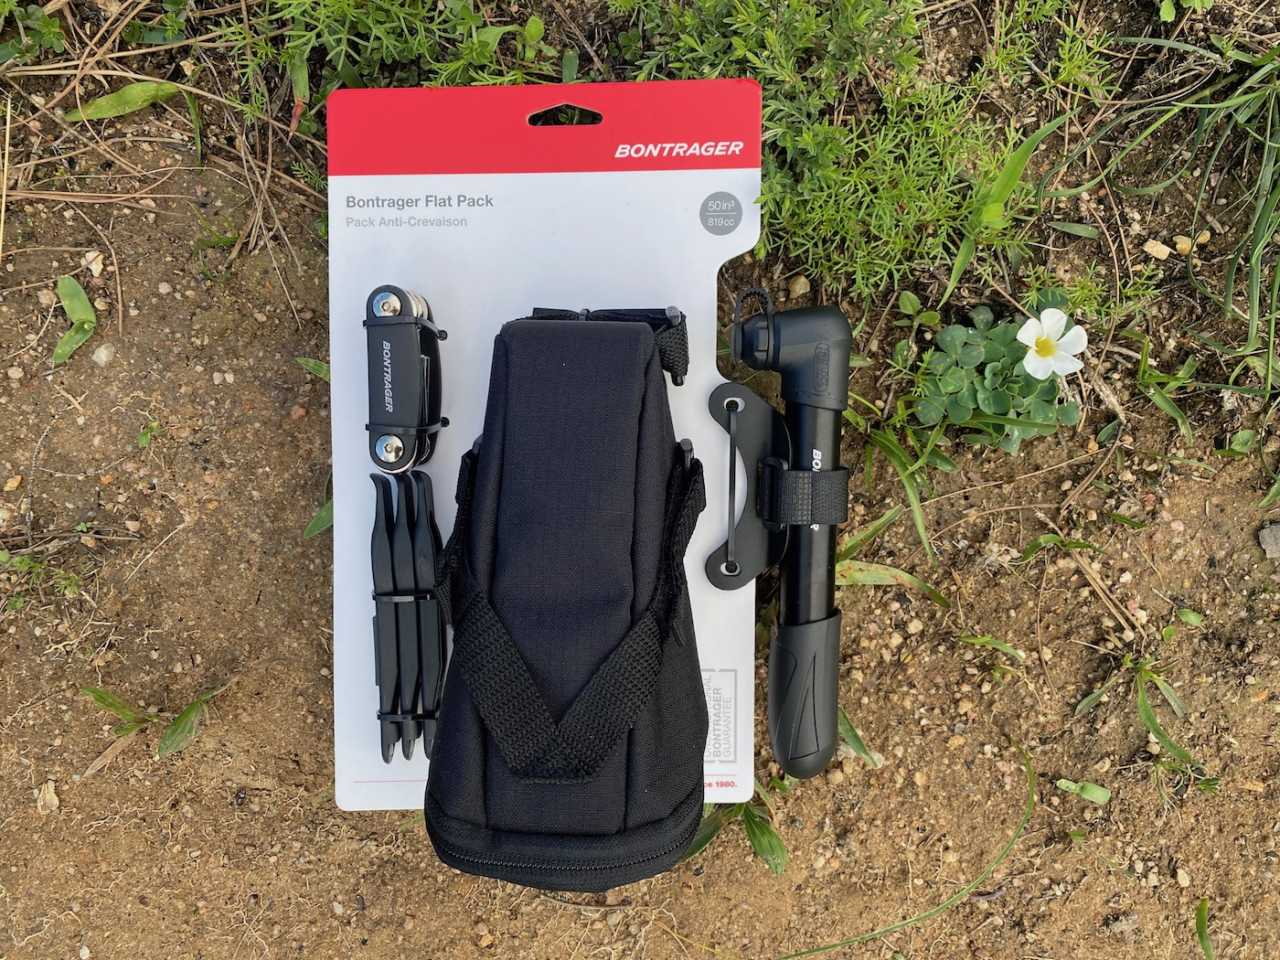 Bontrager flat repair kit for cyclists